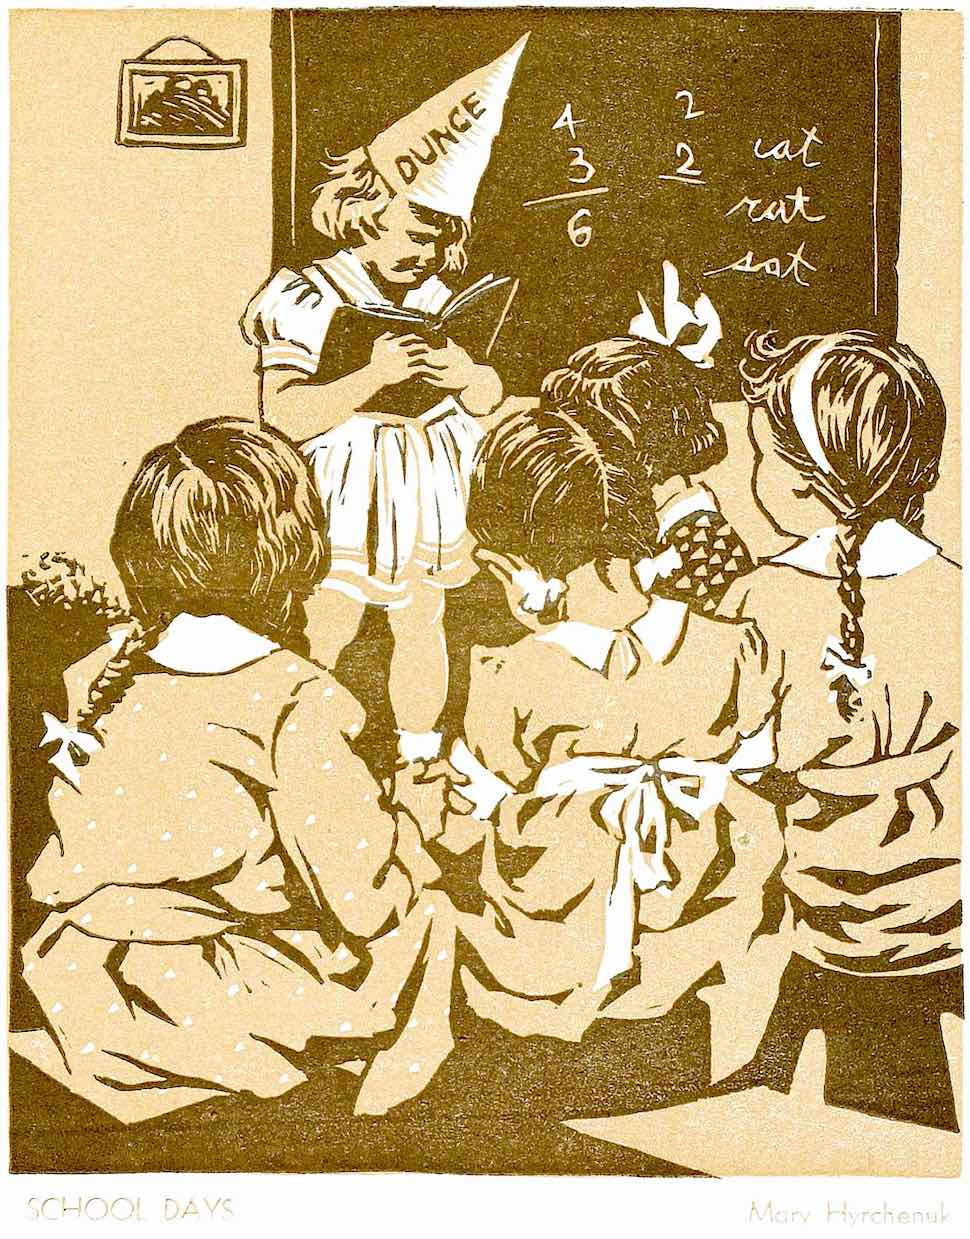 The dunce cap was worn by the least achieving student as humiliation, illustrated by Mary Hyrchenuk 1938